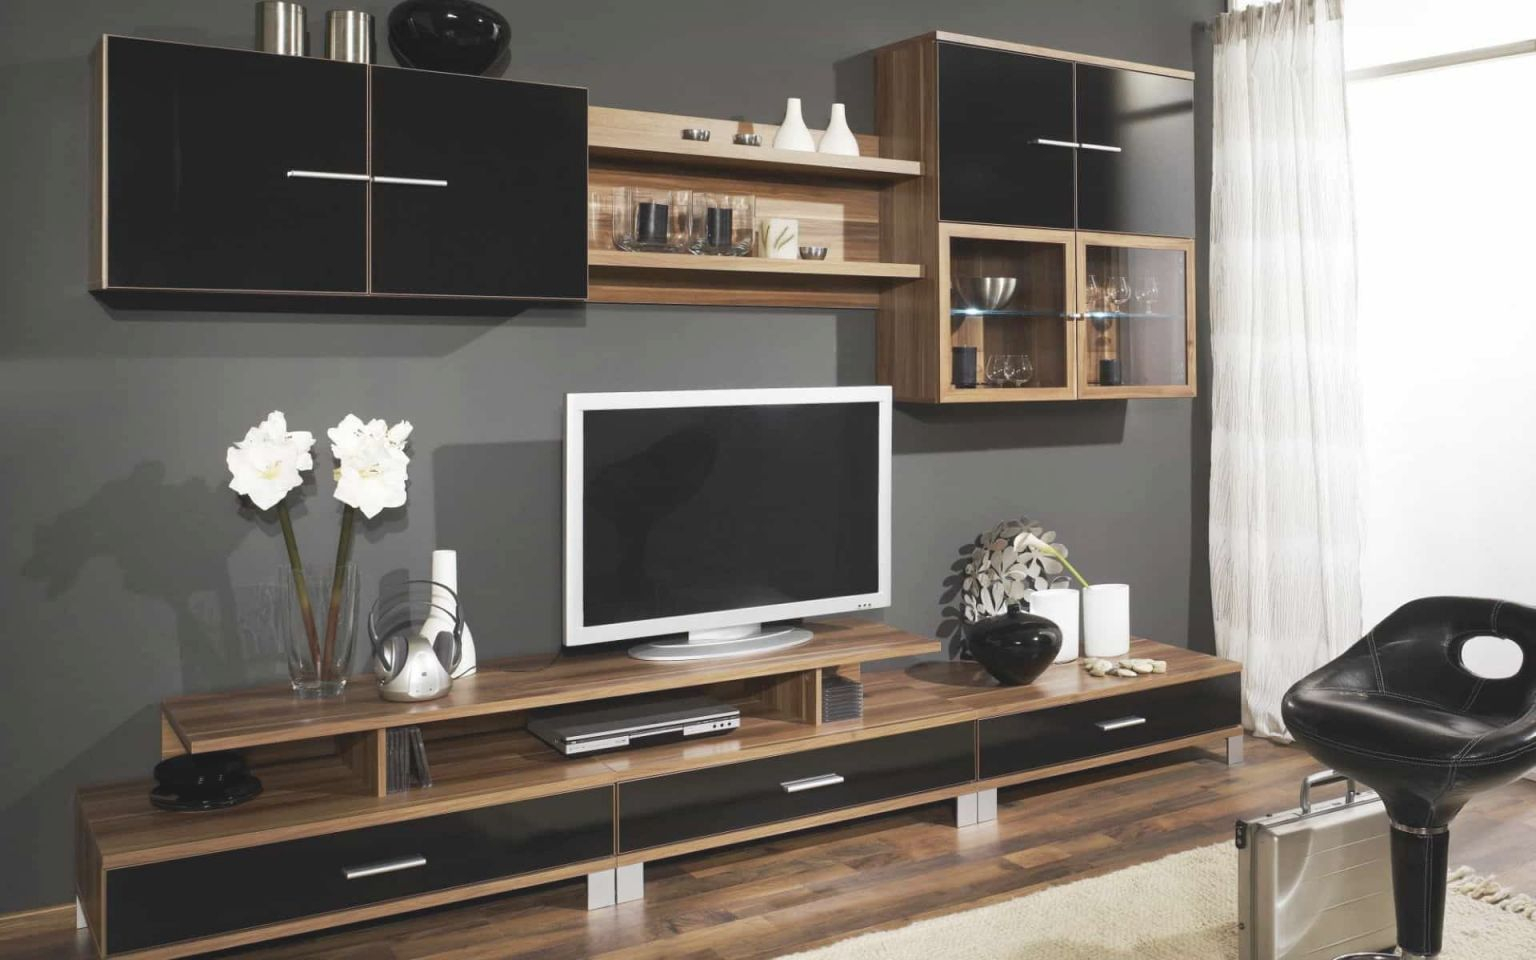 Useful And Stylish Tv Stand Furniture | Home Decor In 2019 inside Stylish Tv Unit